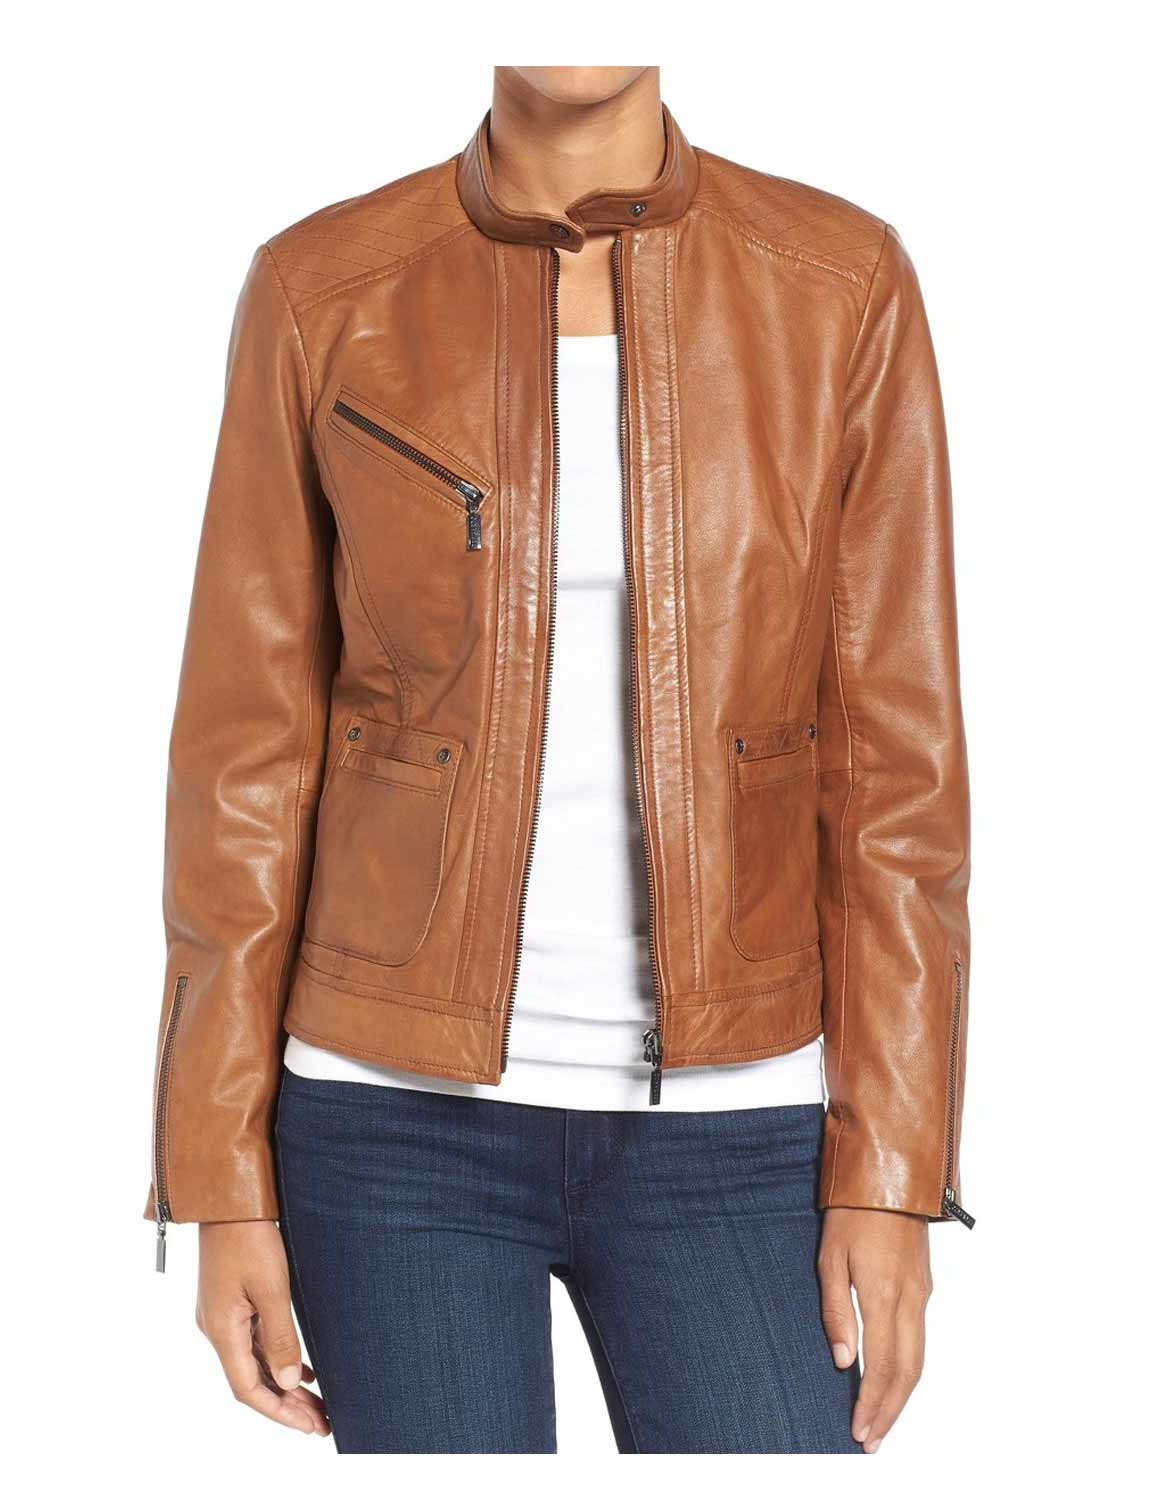 Womens Brown Leather Jacket  Casual Style - Hjackets-6303